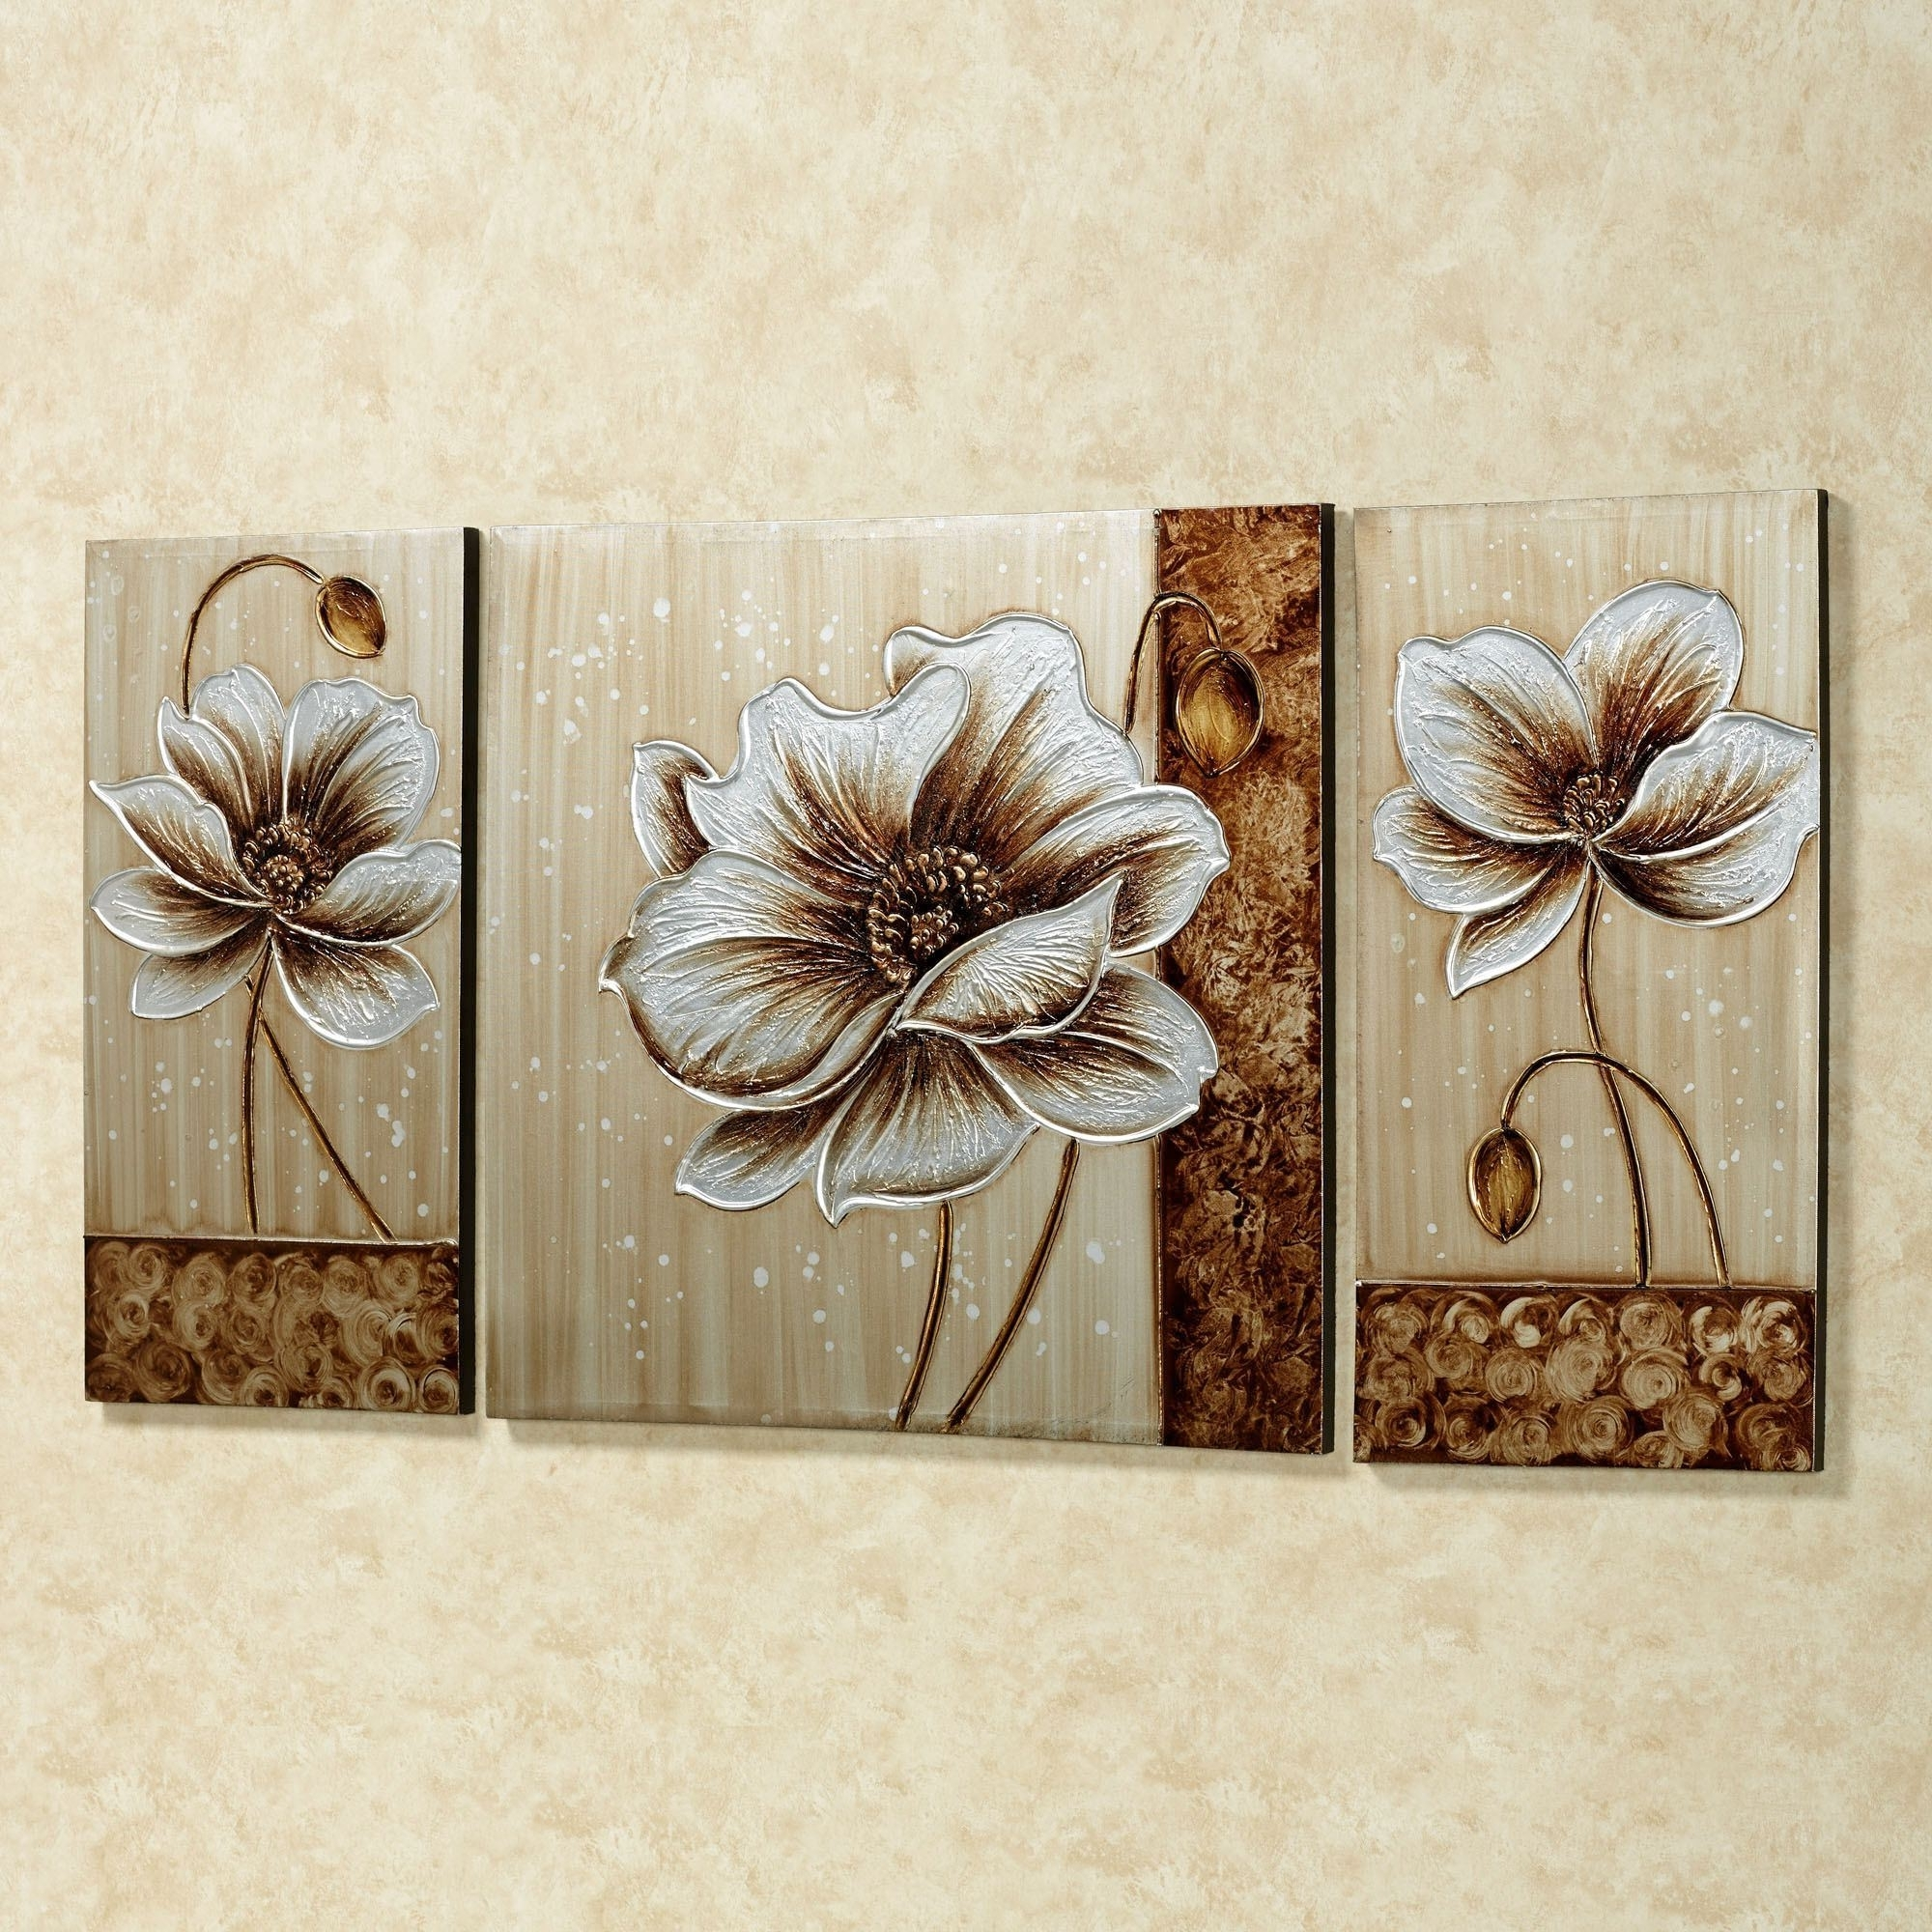 Newest Subtle Elegance Floral Canvas Wall Art Set In Gold Canvas Wall Art (View 13 of 15)